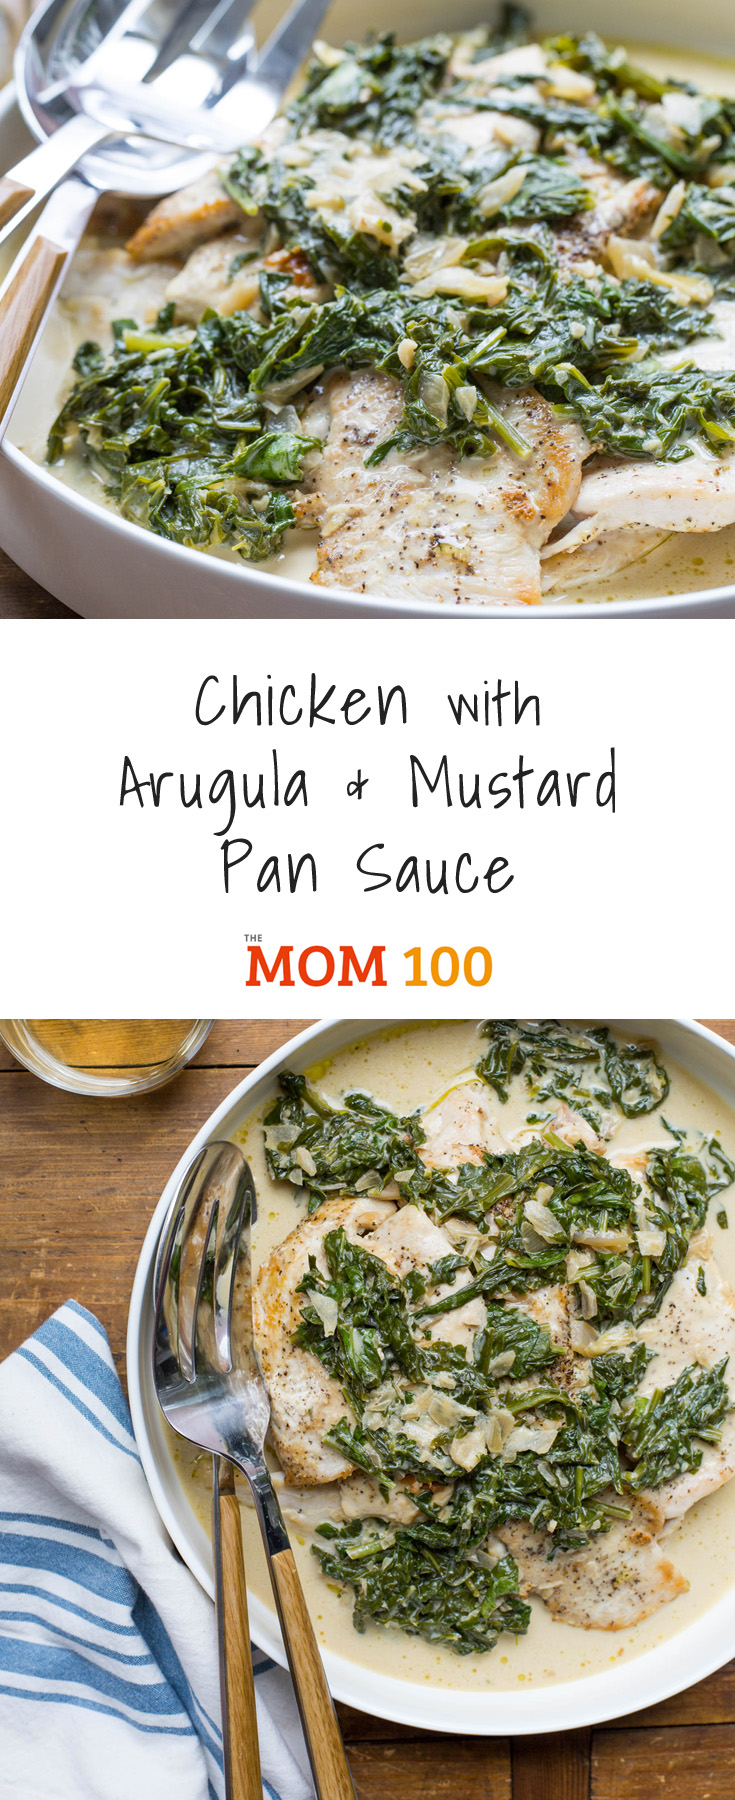 This Chicken with Arugula and Mustard Pan Sauce turns a handful of supporting ingredients and a couple of handfuls of arugula into an amazing pan sauce.